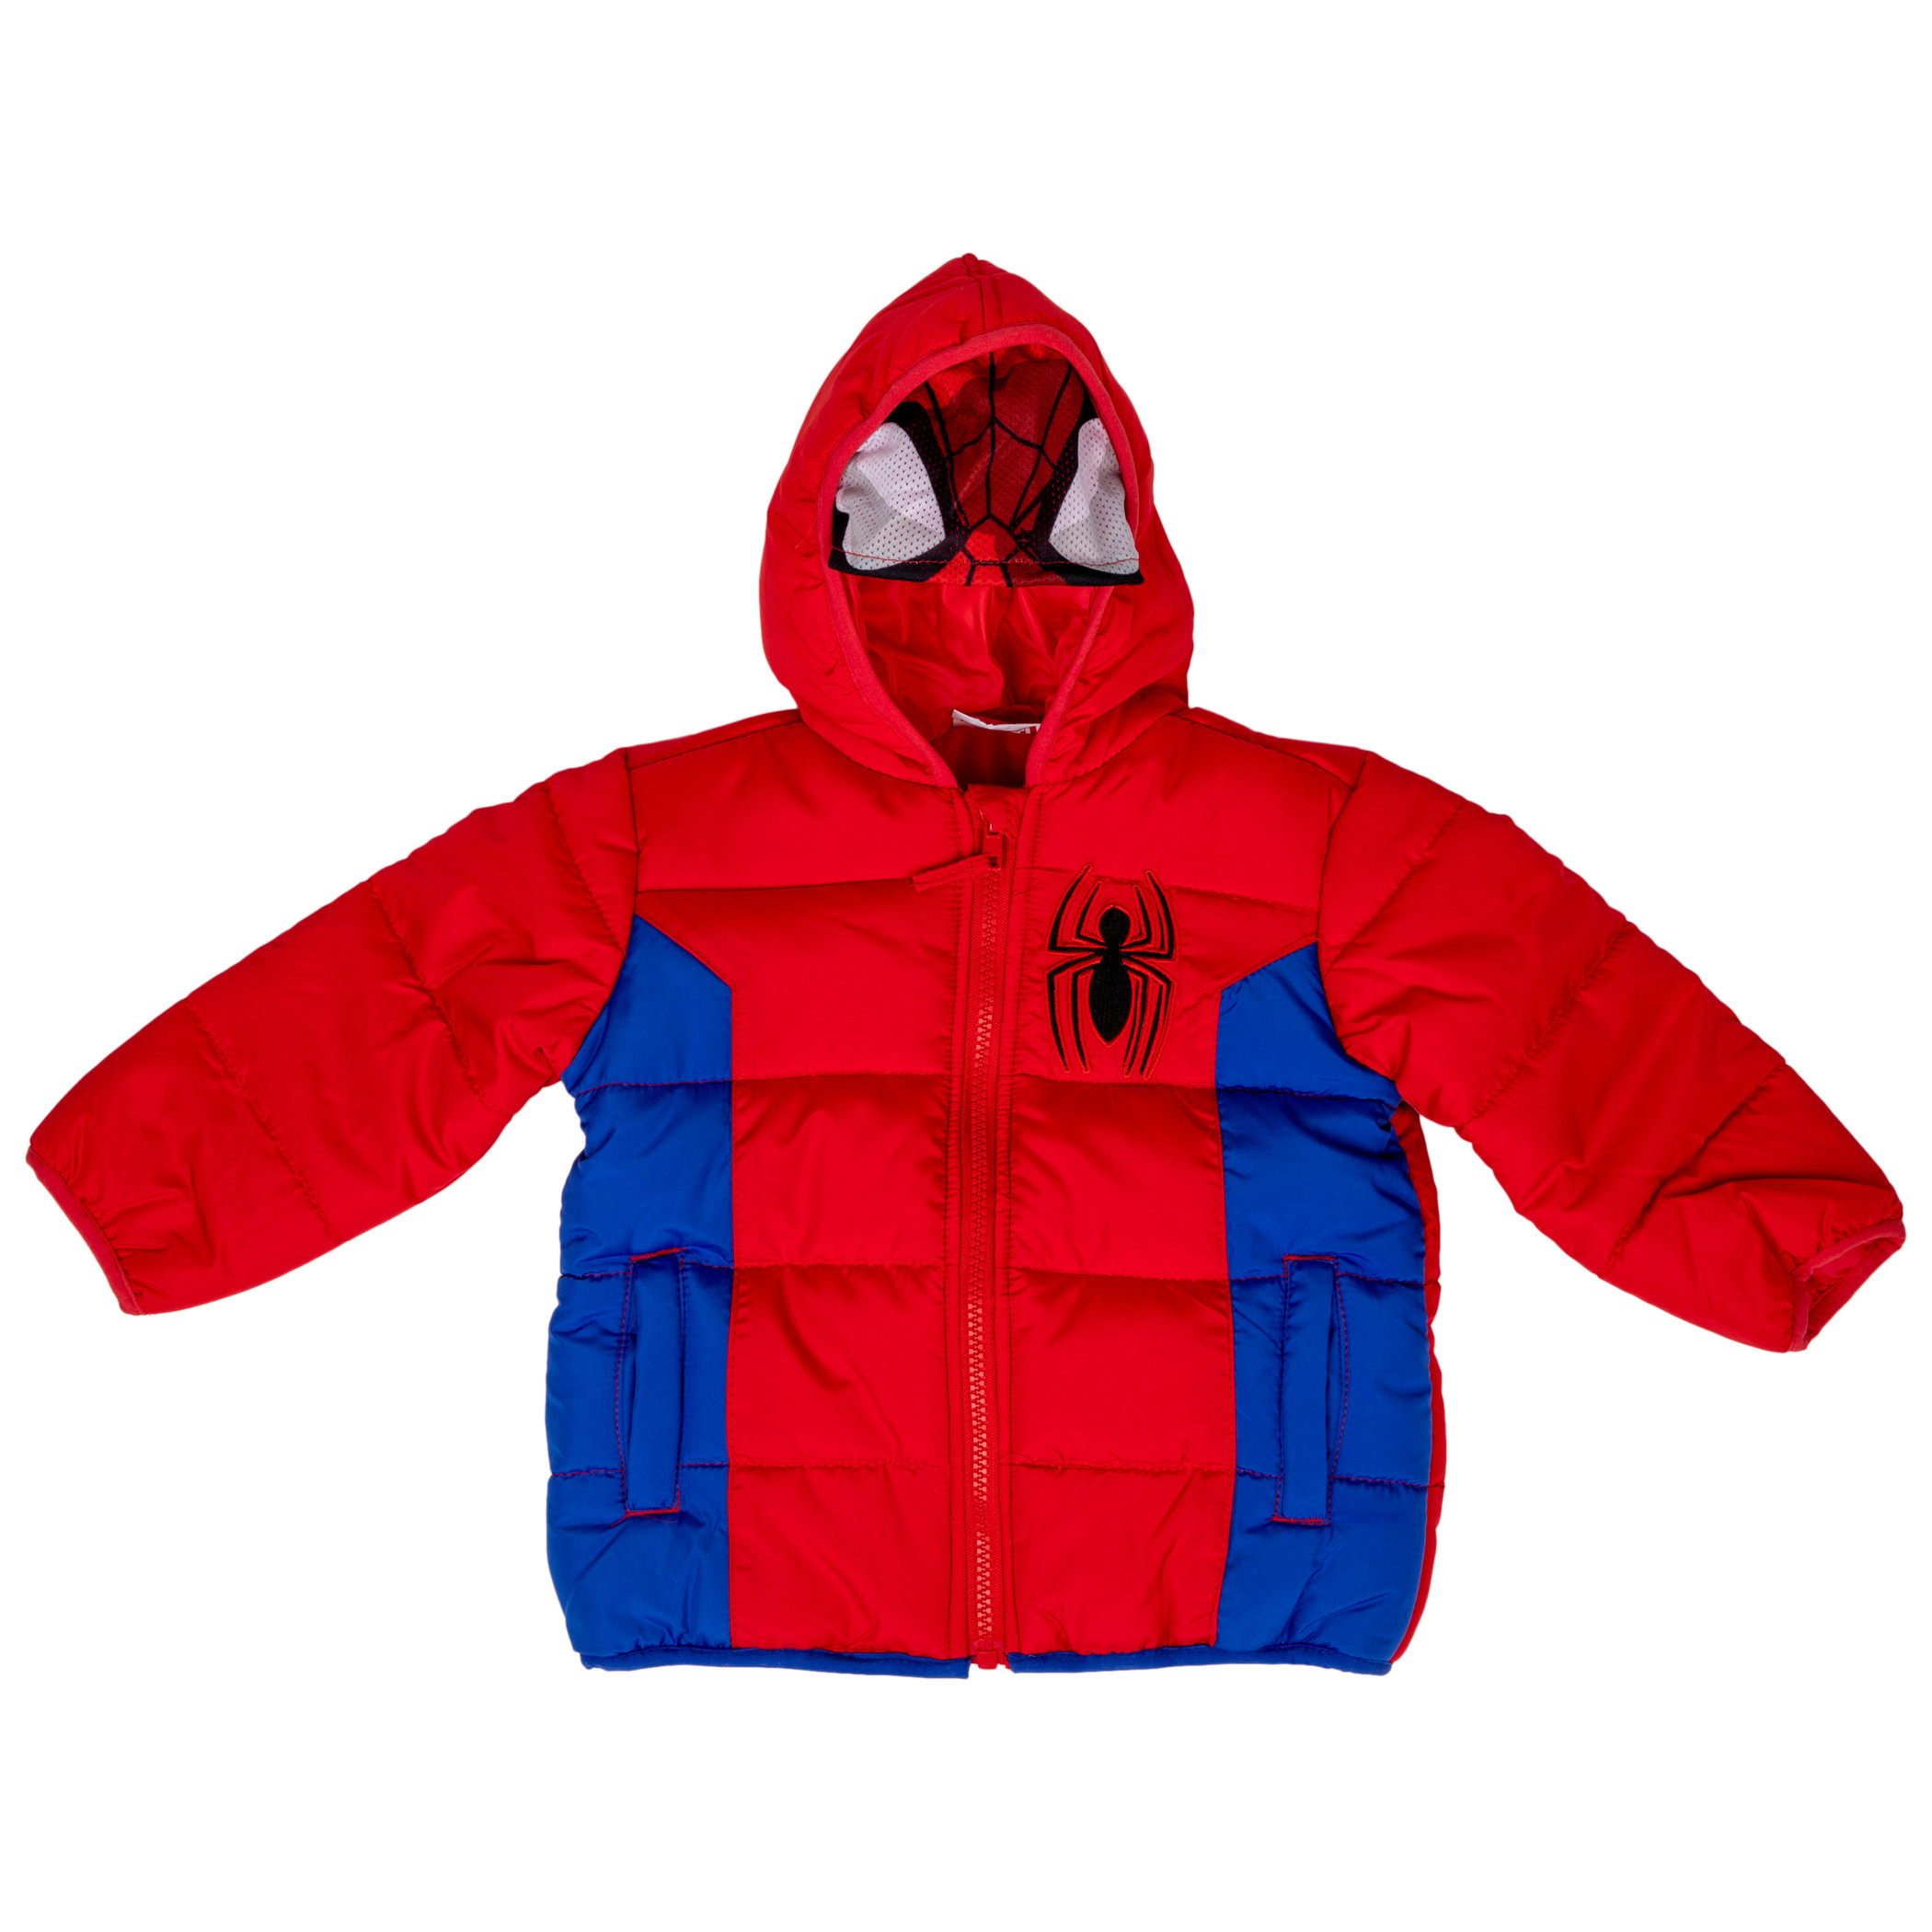 Spider-Man Costume Puffy Kids Jacket